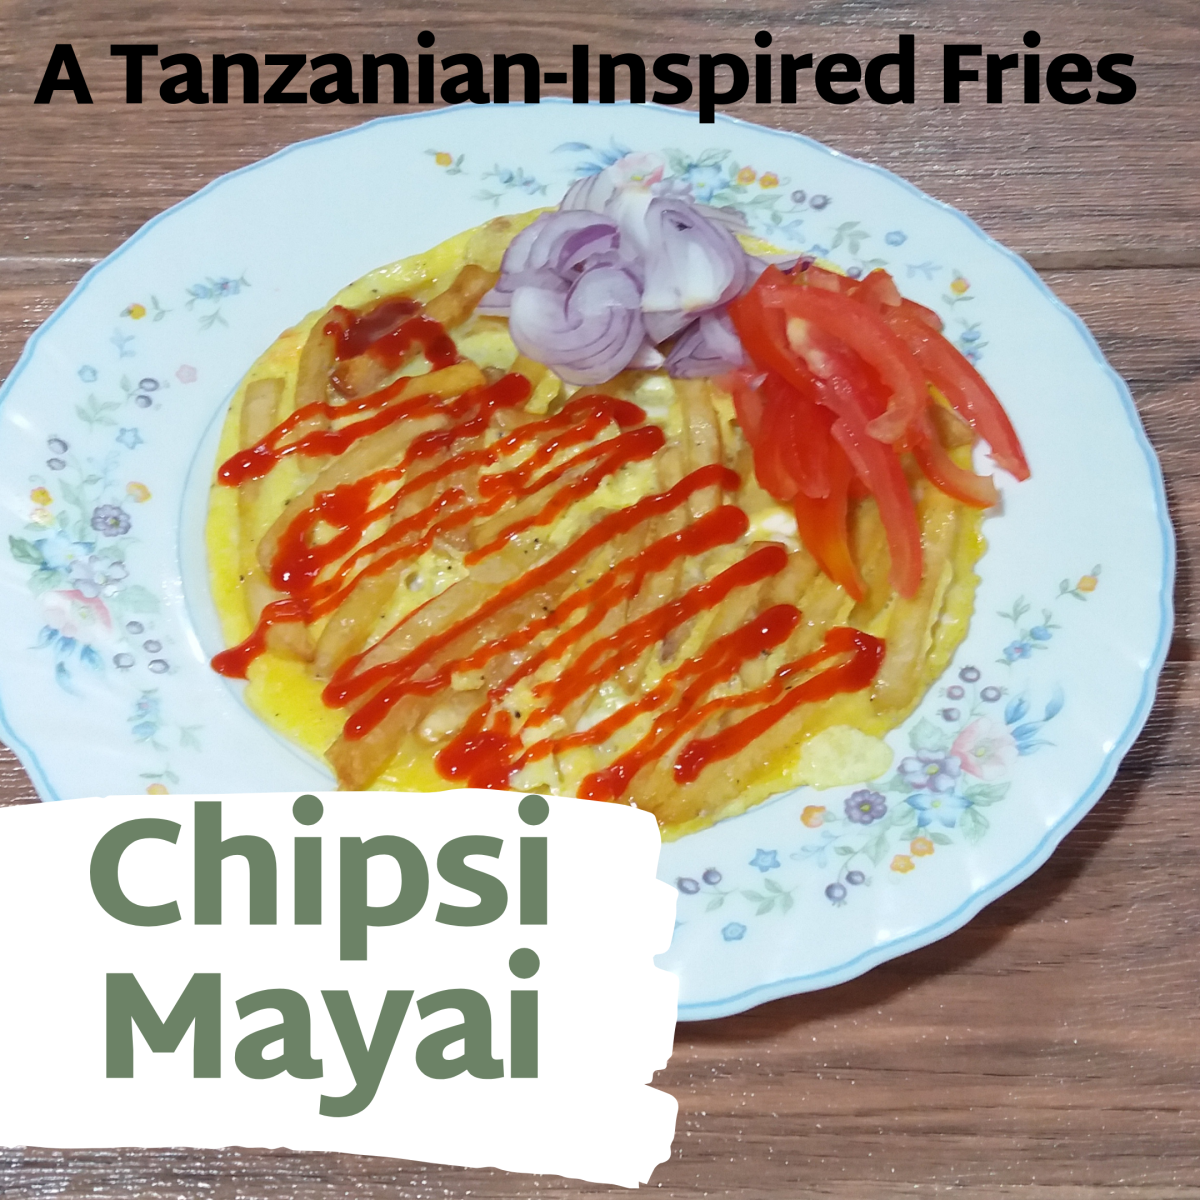 Chipsi Mayai (French Fries Omelette): A Tanzanian-Inspired Snack